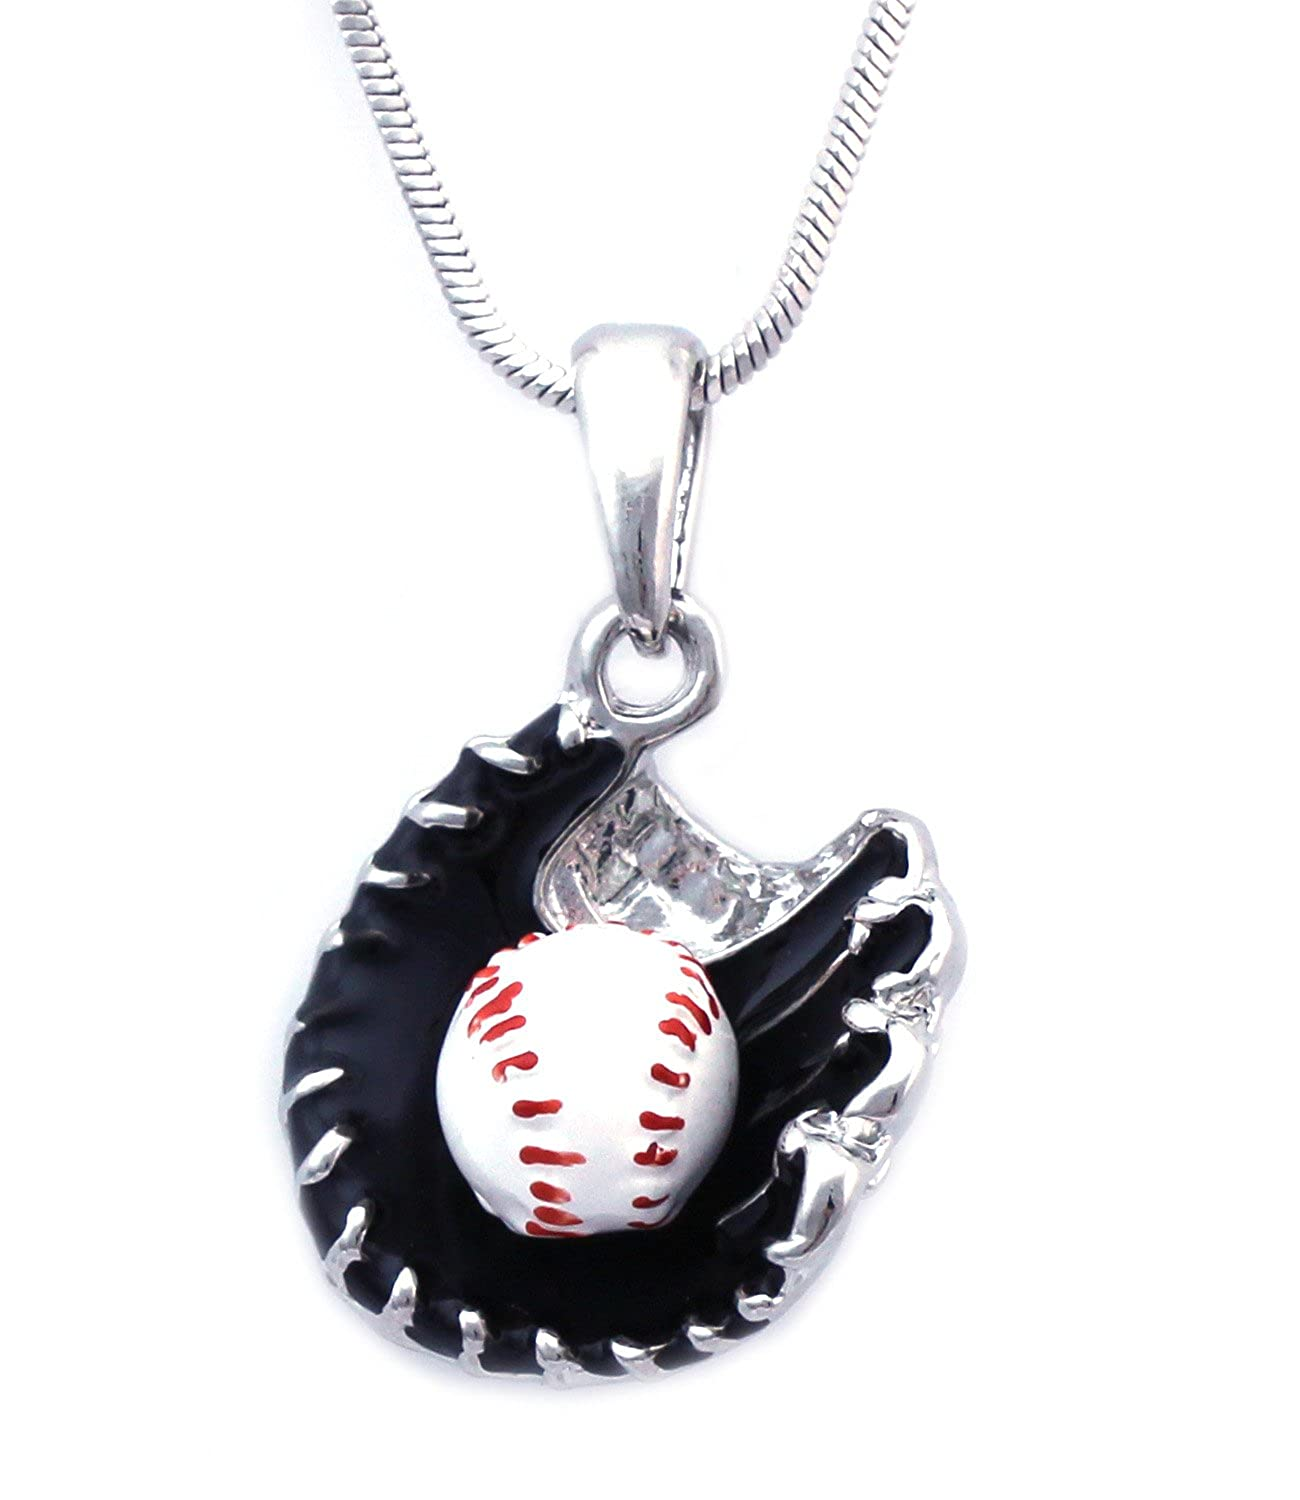 chicago logo baseball vintage mlb pendant product sox white gold